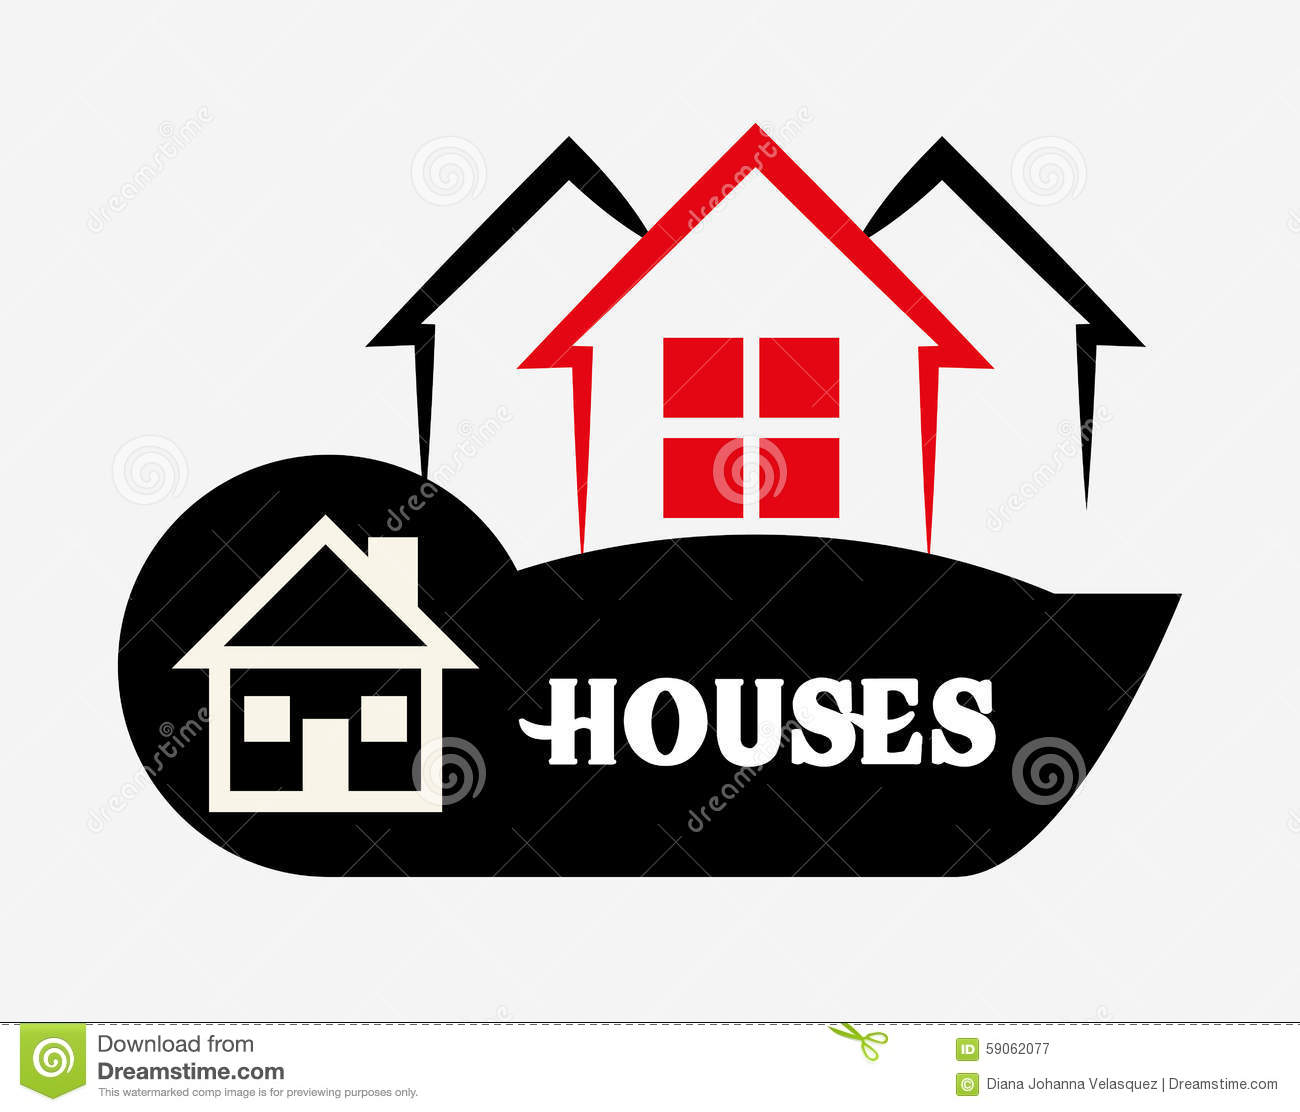 House design stock vector image 59062077 for Graphic design house